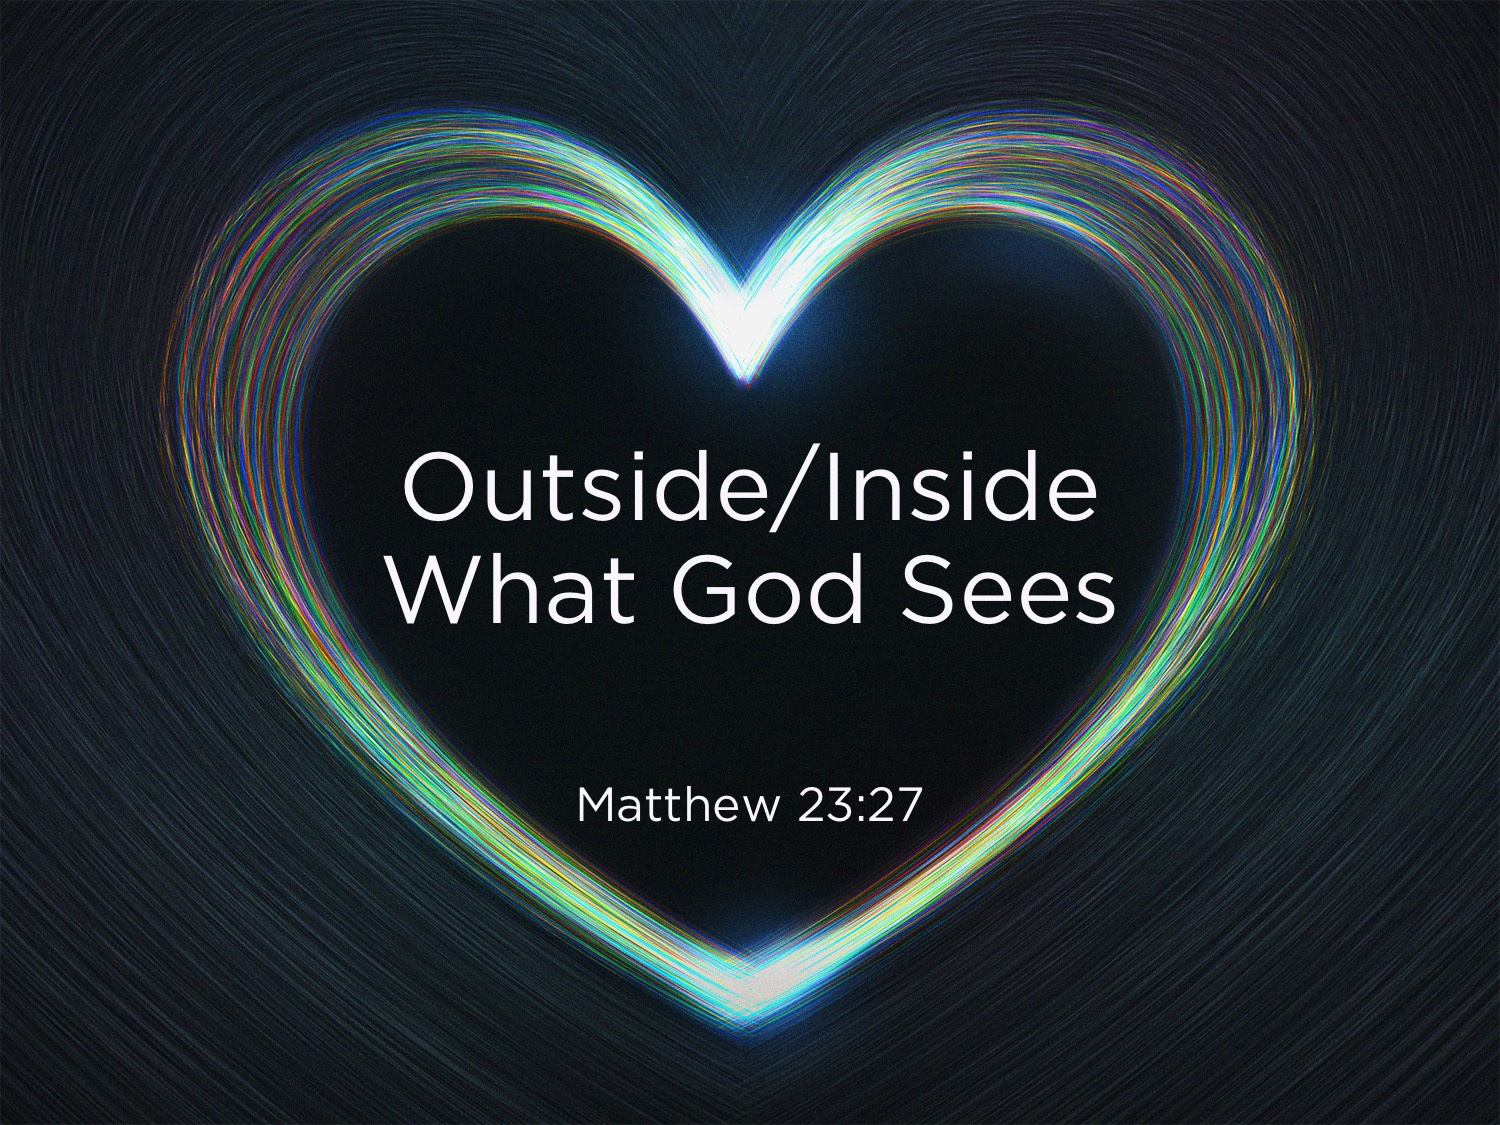 OutsideInside What God Sees